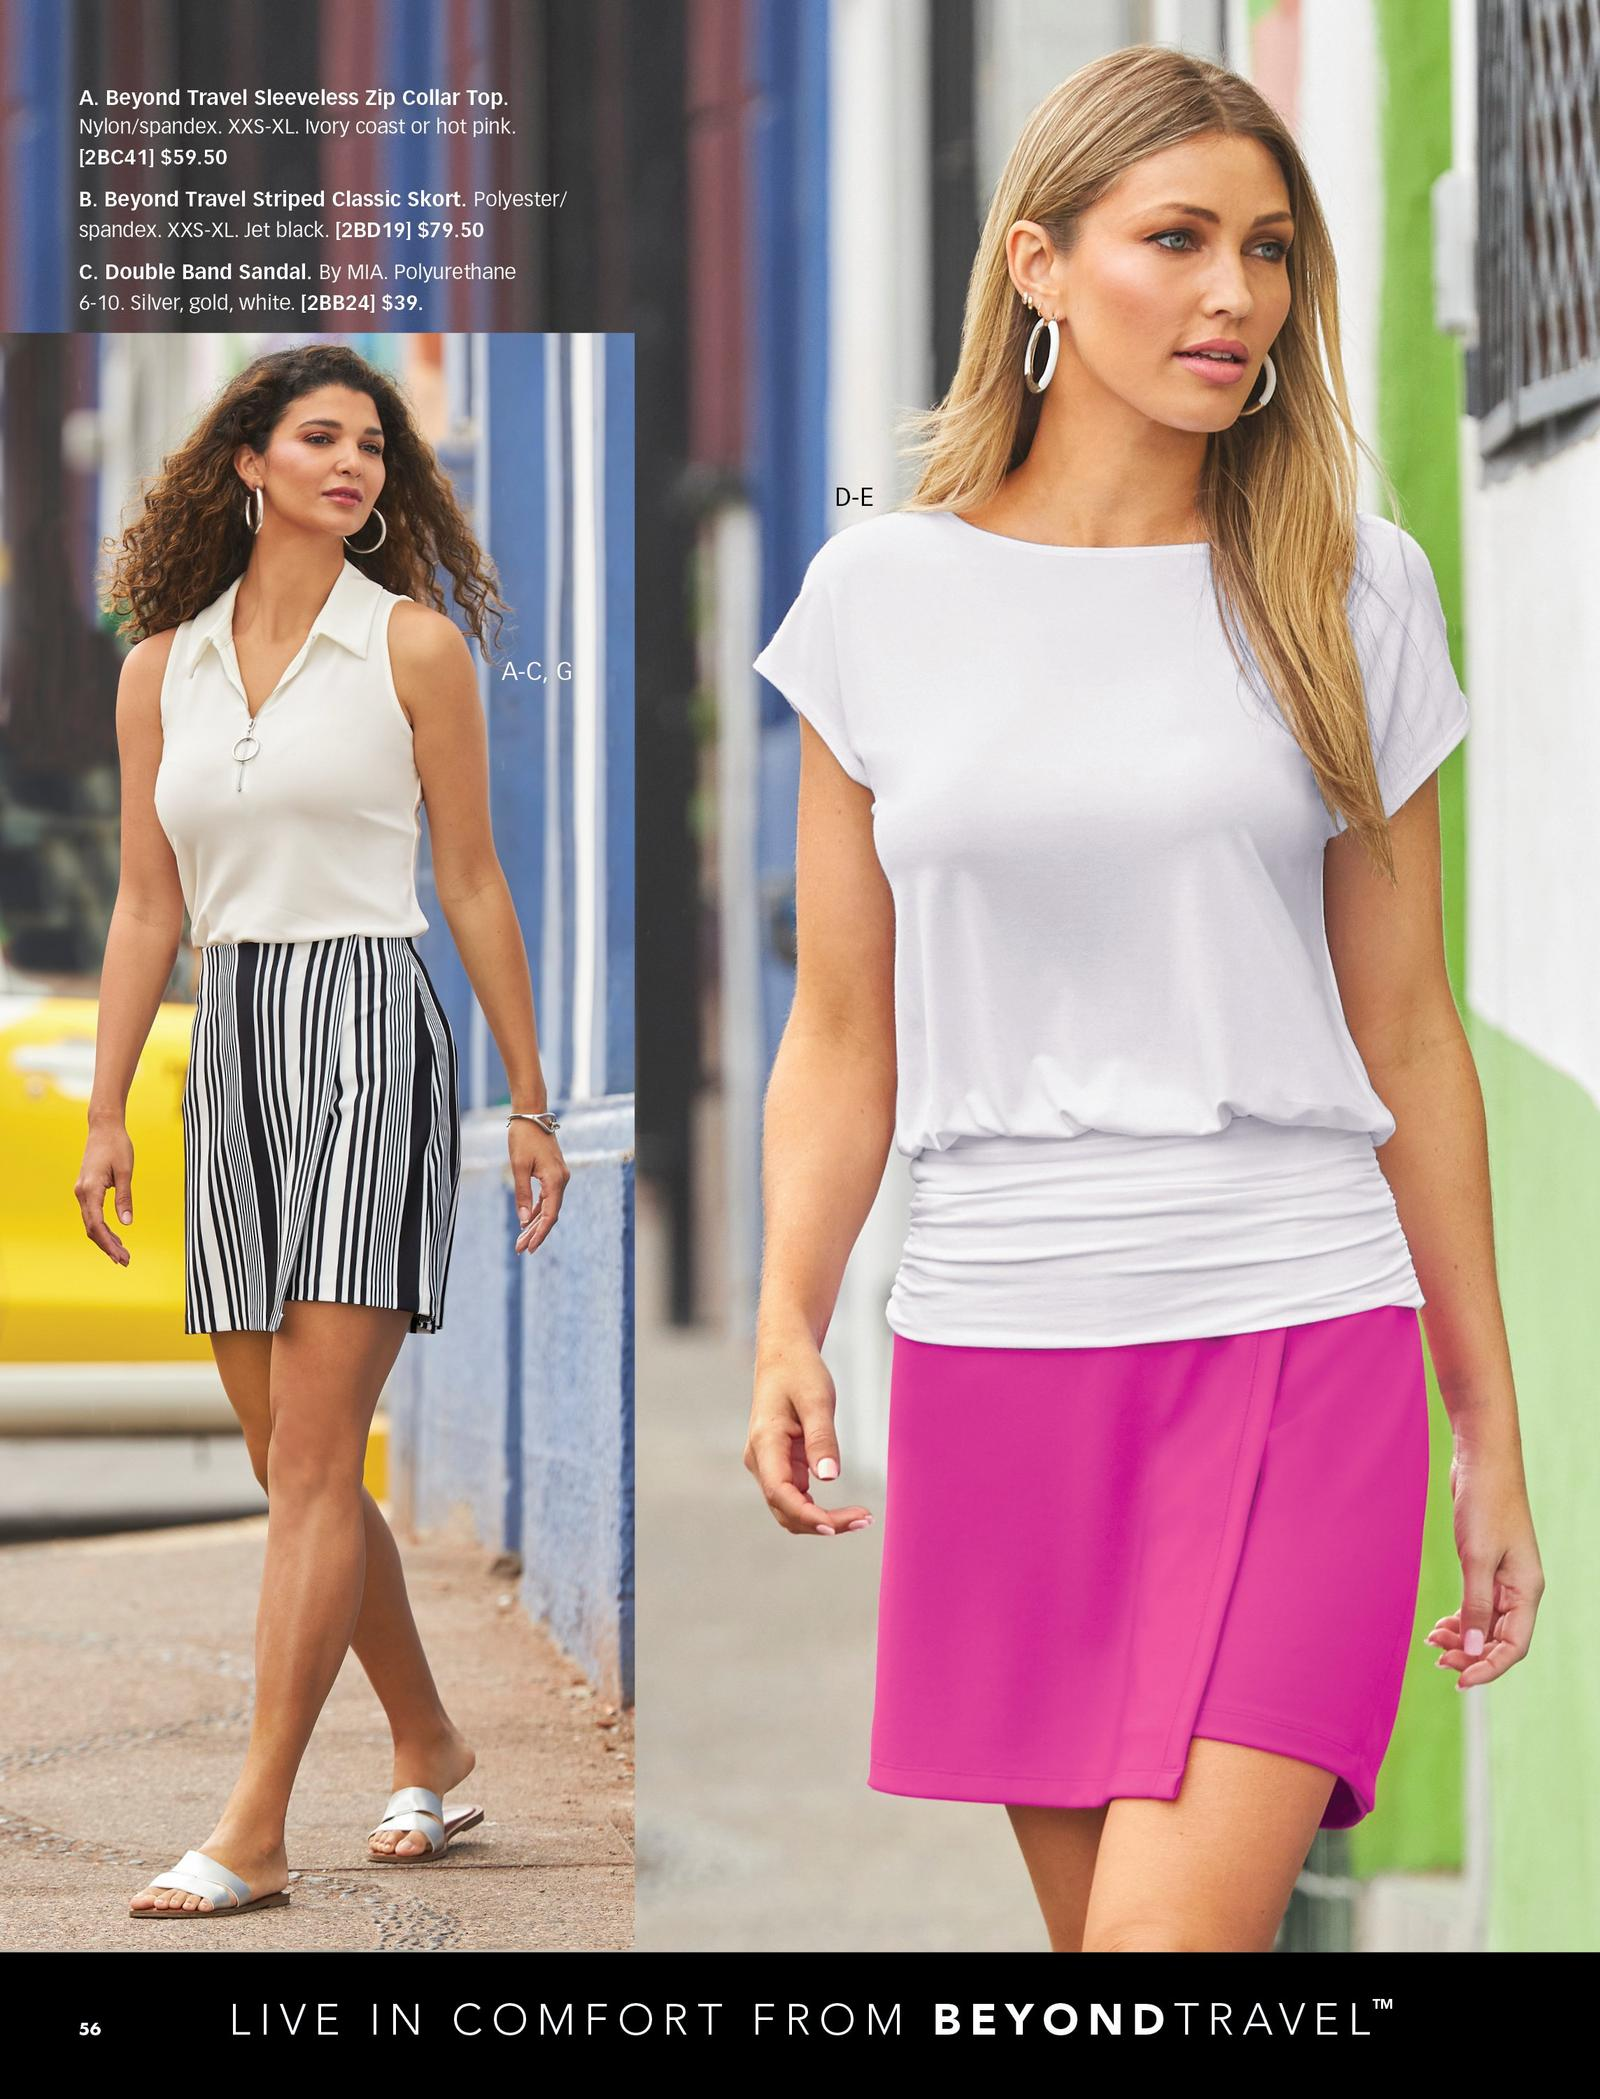 left model wearing a white sleeveless collared top, black and white striped skort, silver hoop earrings, and silver double-strap sandals. right model wearing a white cap-sleeve blouson top, hot pink skort, and white hoop earrings.